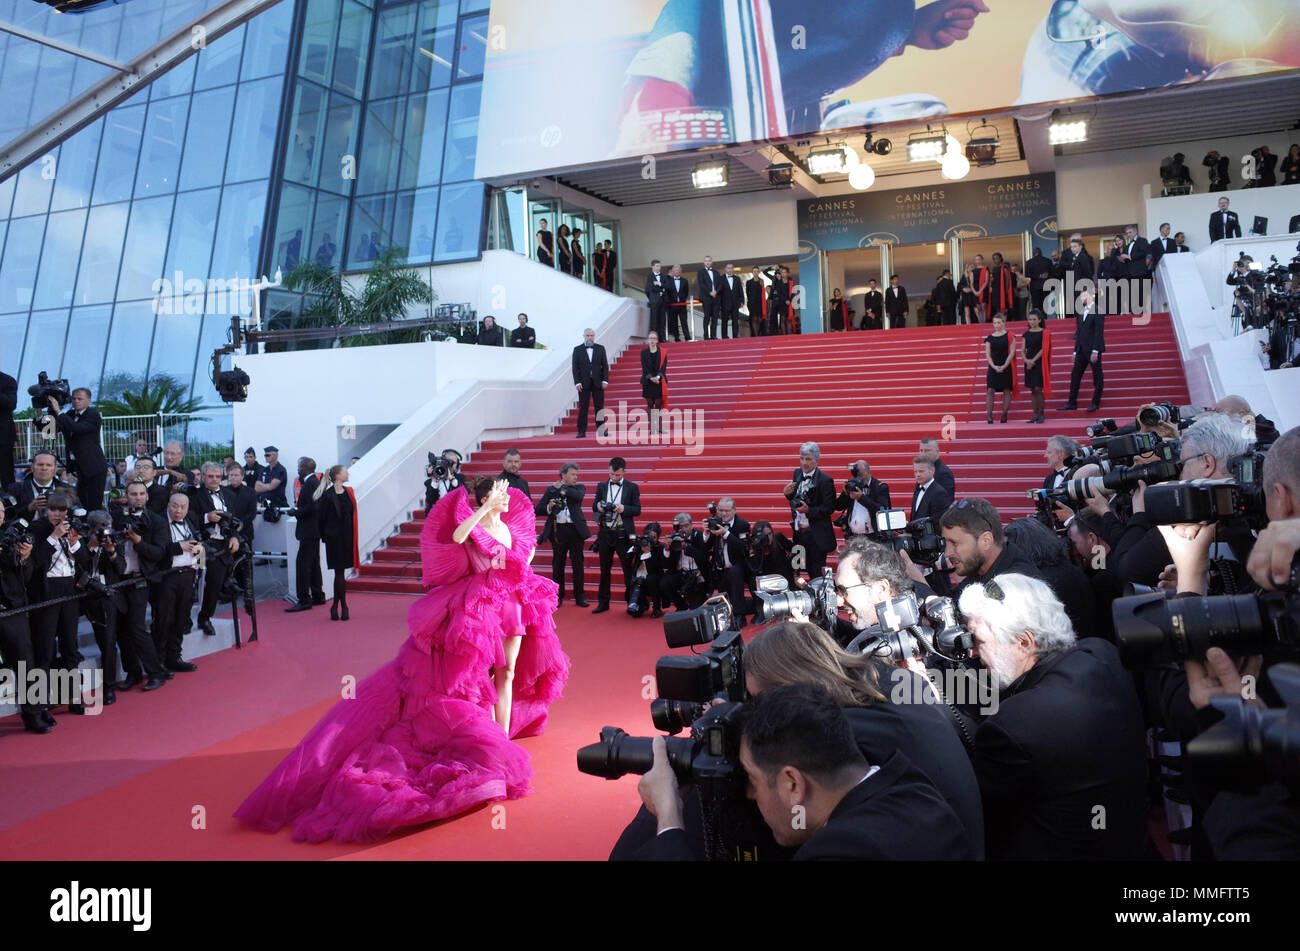 Cannes, France. May 11, 2018 - Cannes, France: Deepika Padukone attends the 'Ash is the Purest White' premiere during the 71st Cannes film festival. Credit: Idealink Photography/Alamy Live News Stock Photo